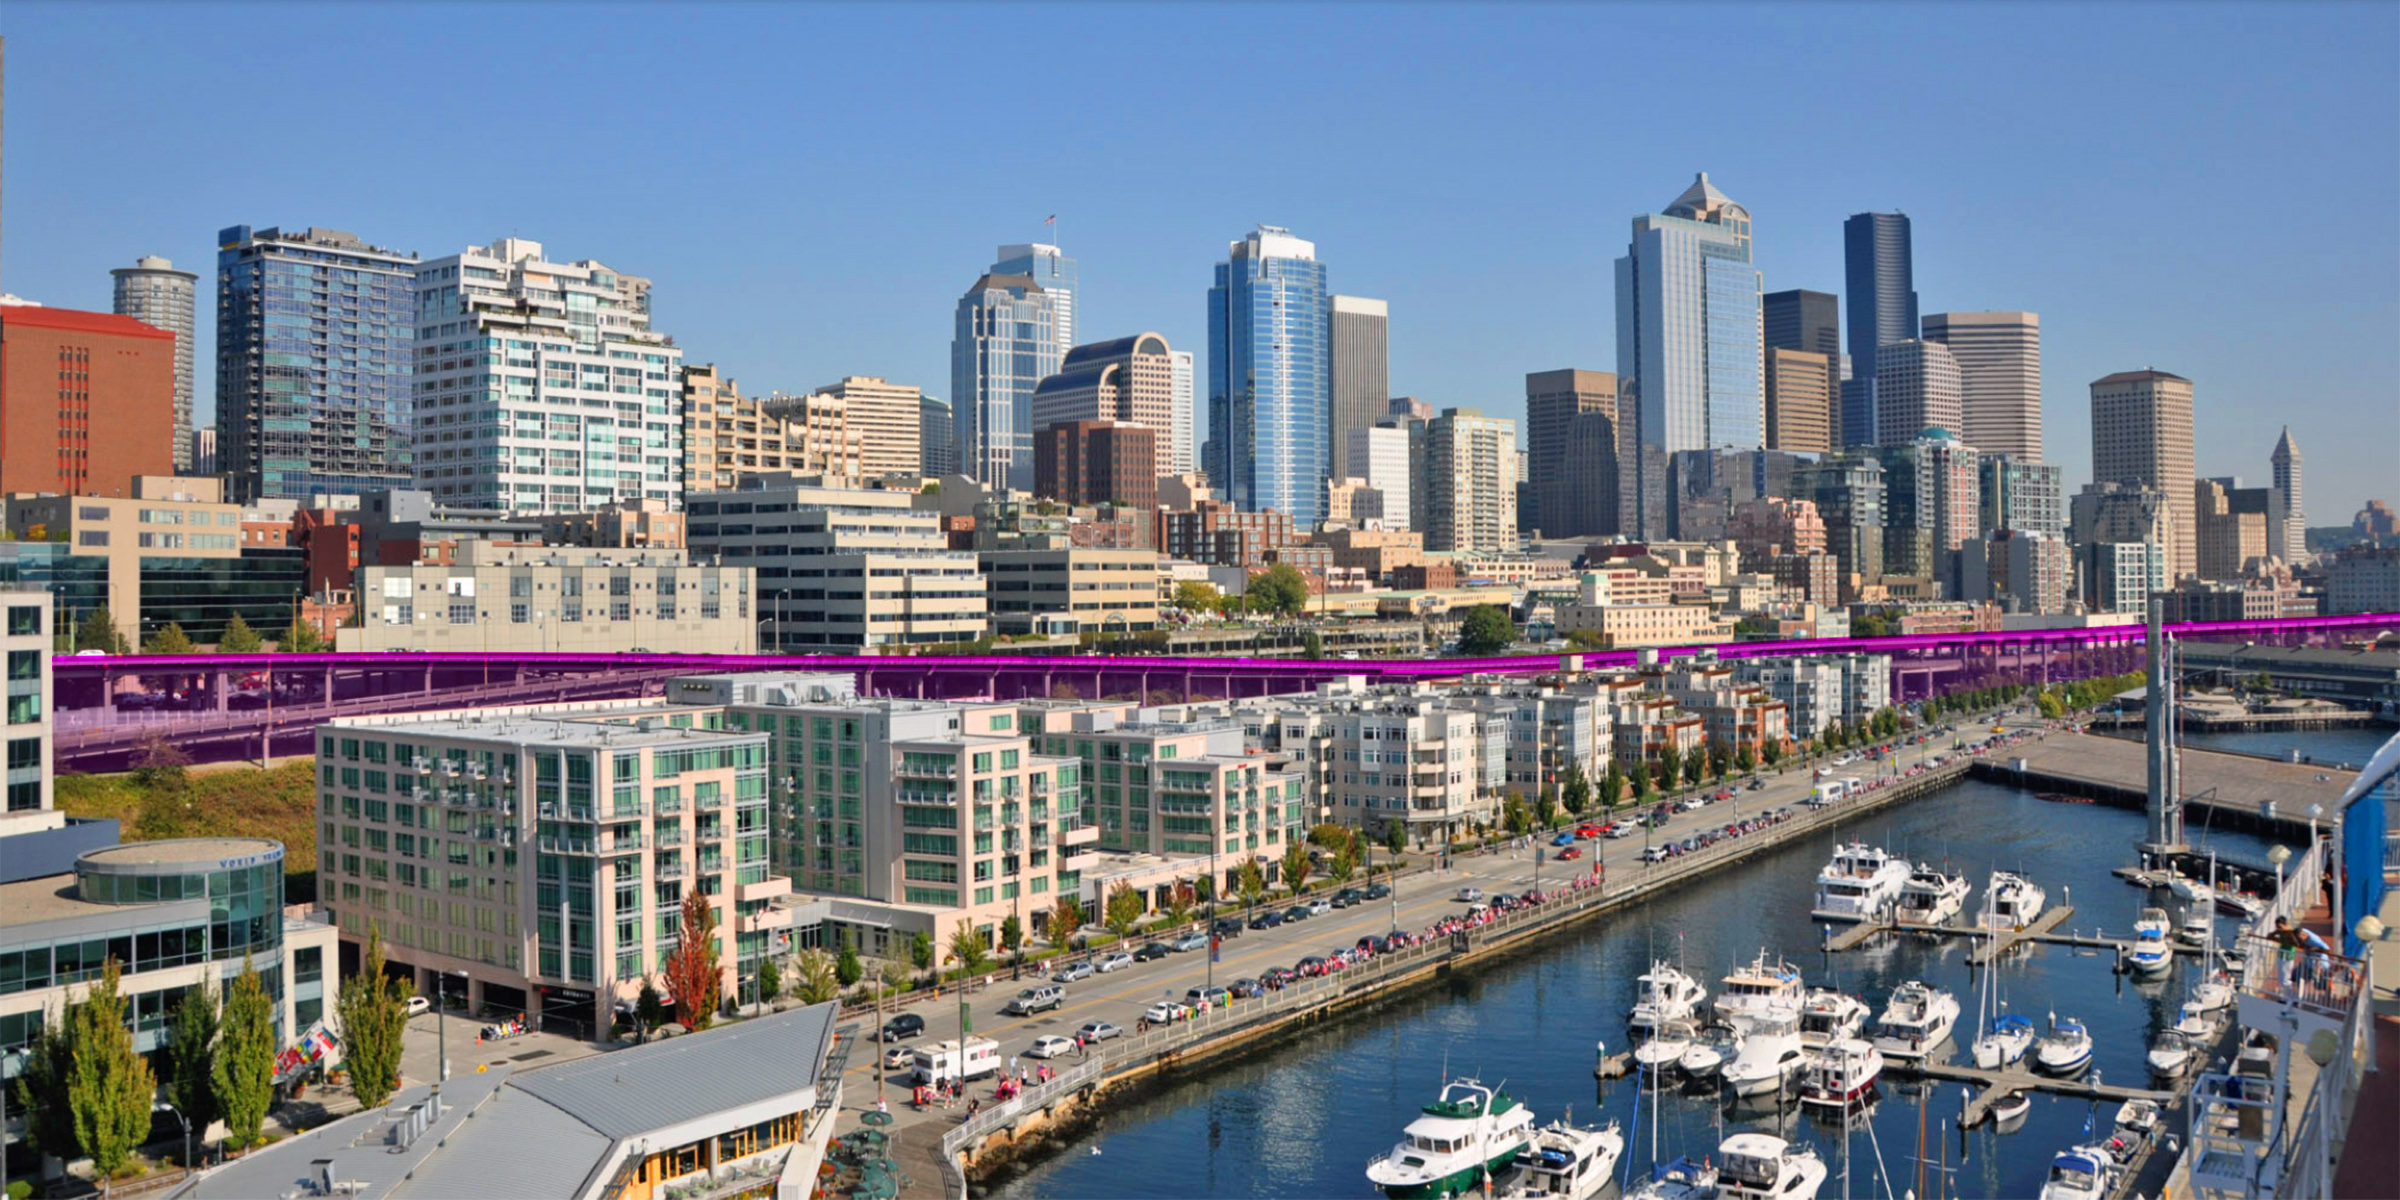 Seattle's Alaskan Way Viaduct Highlighted in Pink